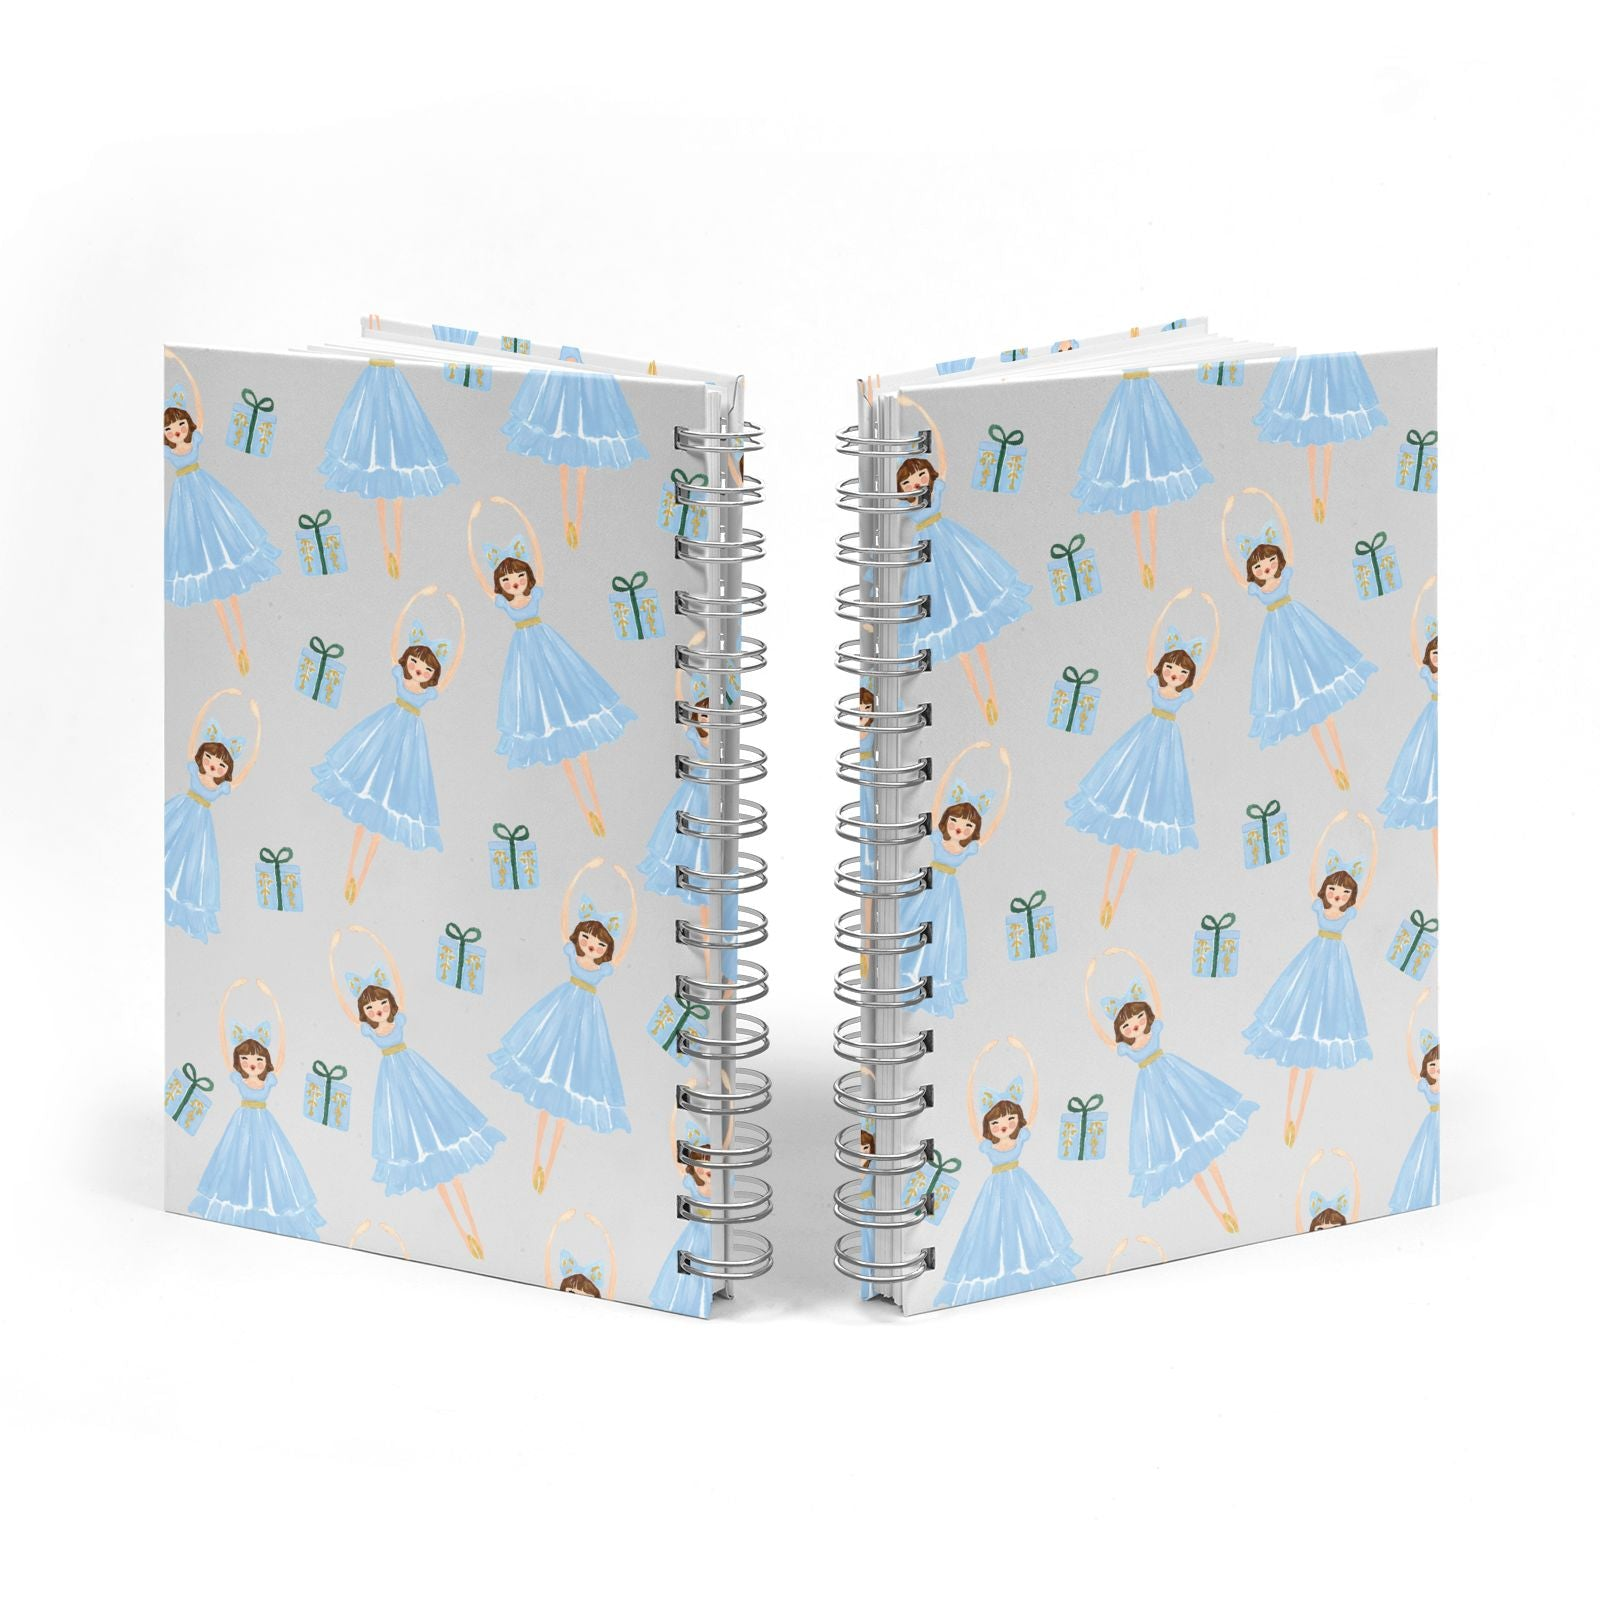 Christmas ballerina present Notebook with Silver Coil Spine View